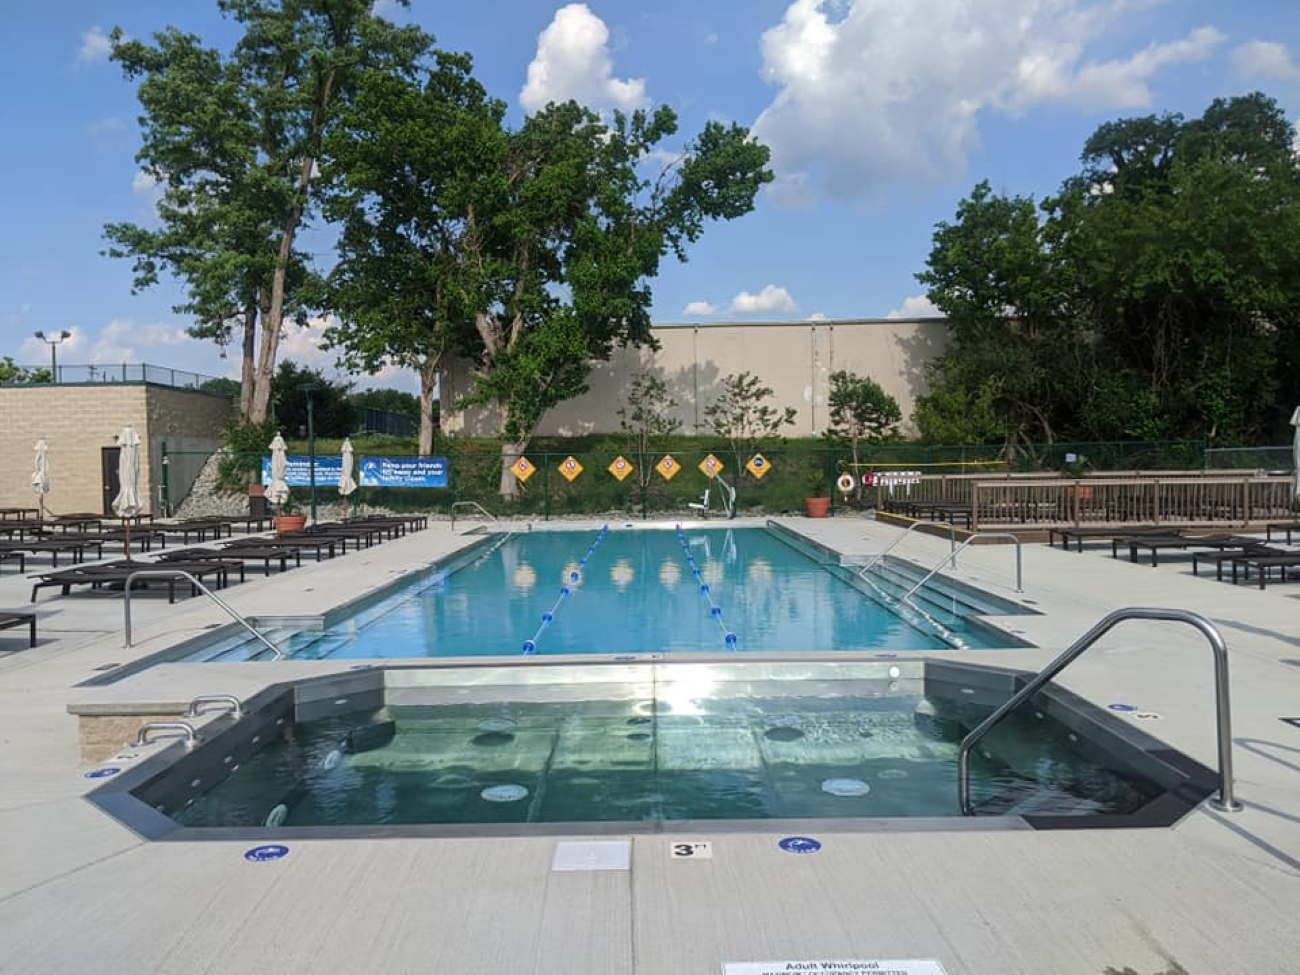 Year-round memberships are available for singles, couples, and families. The new adult-only pool will be open daily from 10 AM to 9 PM. / Image courtesy of Cincinnati Sports Club // Published: 6.27.20